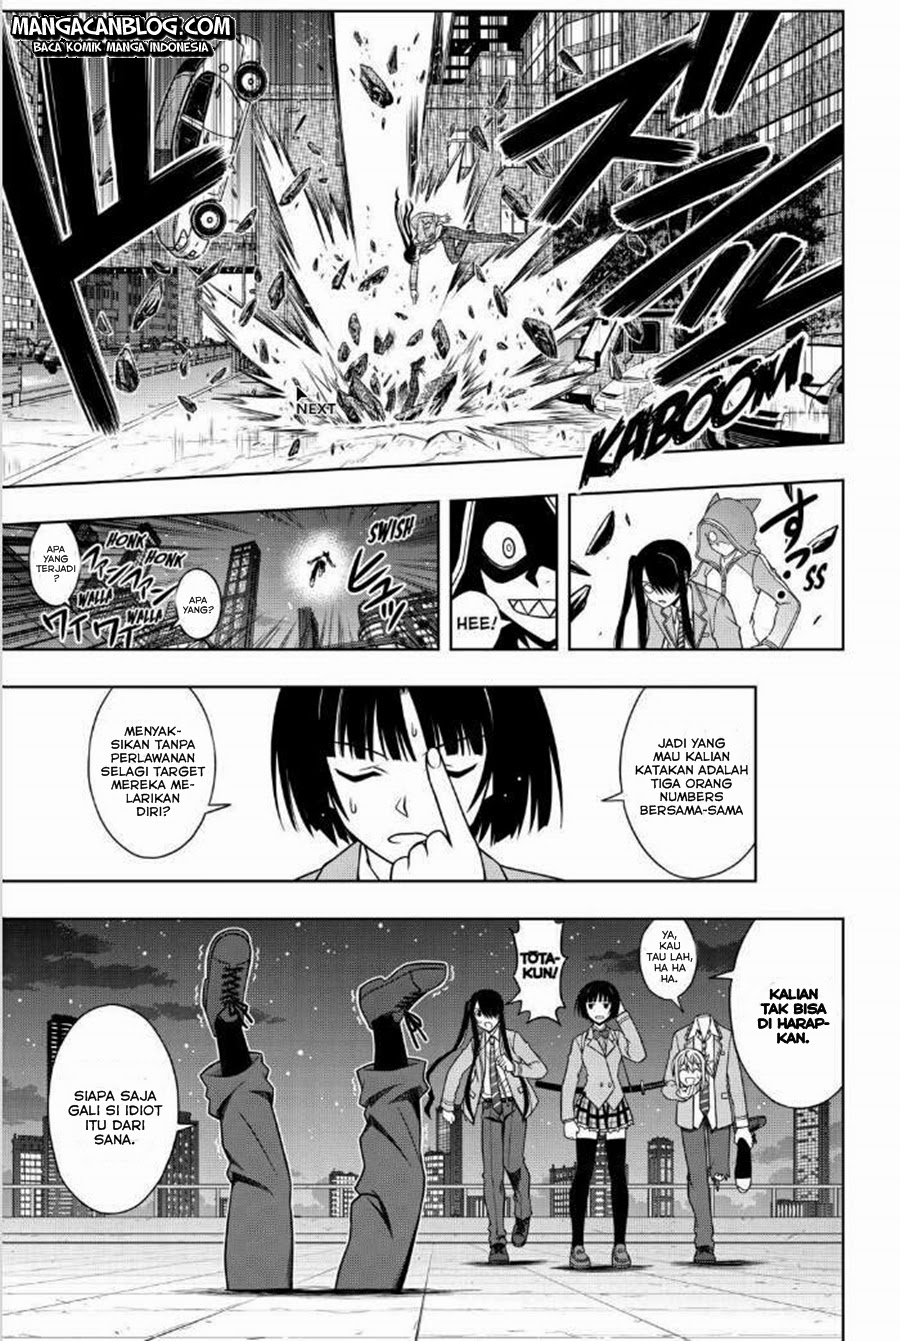 Komik uq holder 047 - psion vs immortal 48 Indonesia uq holder 047 - psion vs immortal Terbaru 11|Baca Manga Komik Indonesia